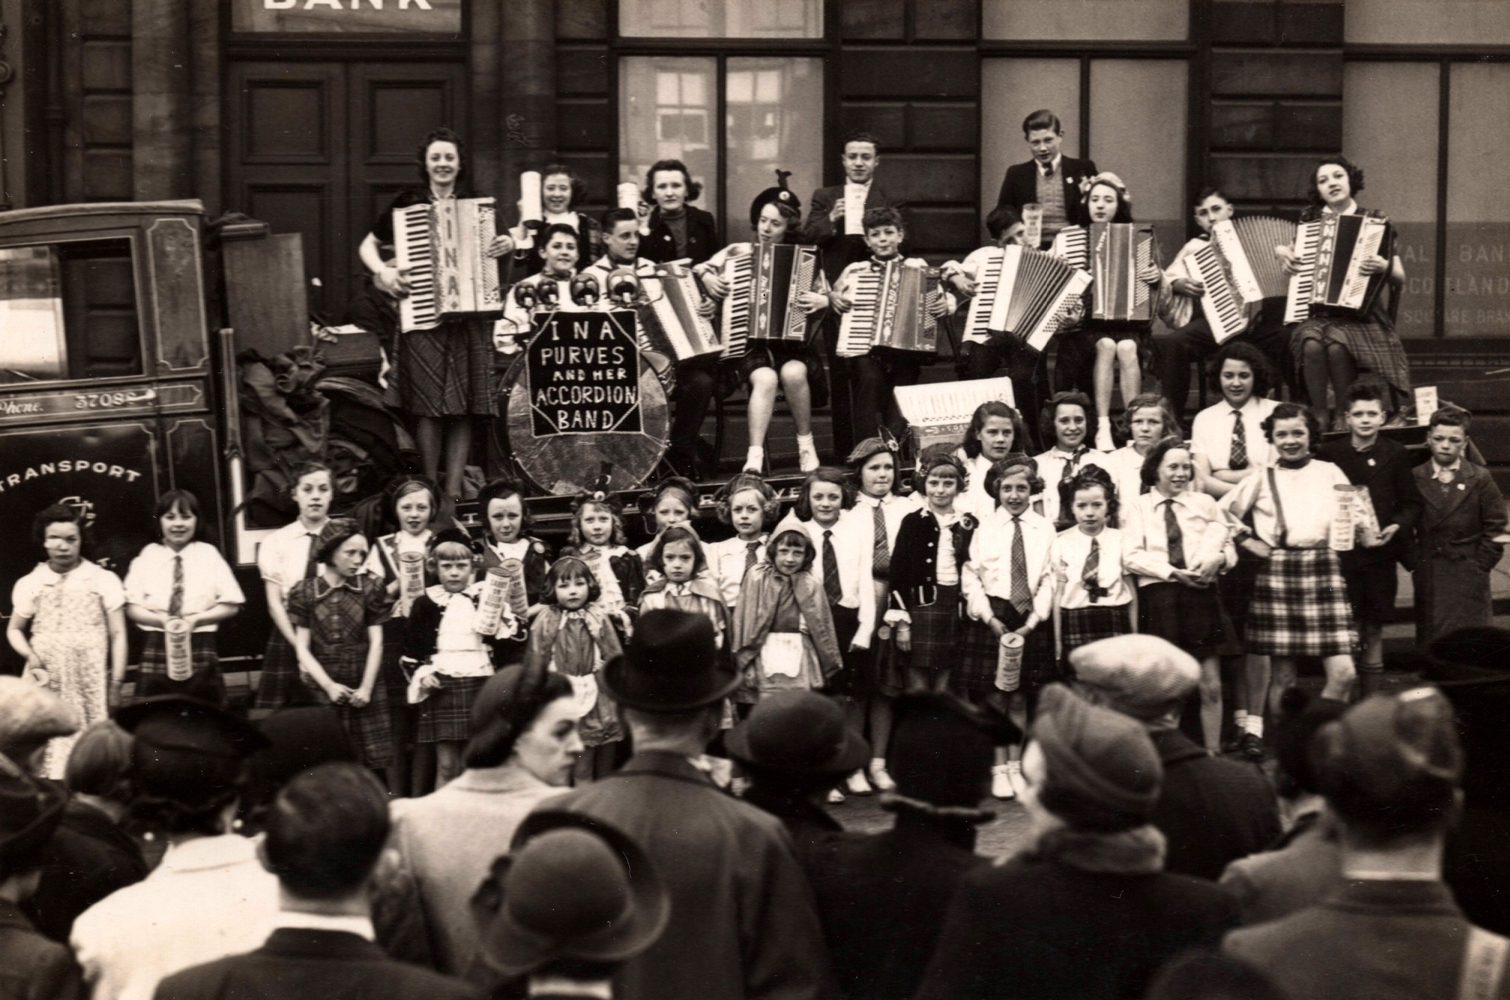 Ina Purves And Her Accordion Band On Float Outside Branch Of Royal Bank Of Scotland c.1940